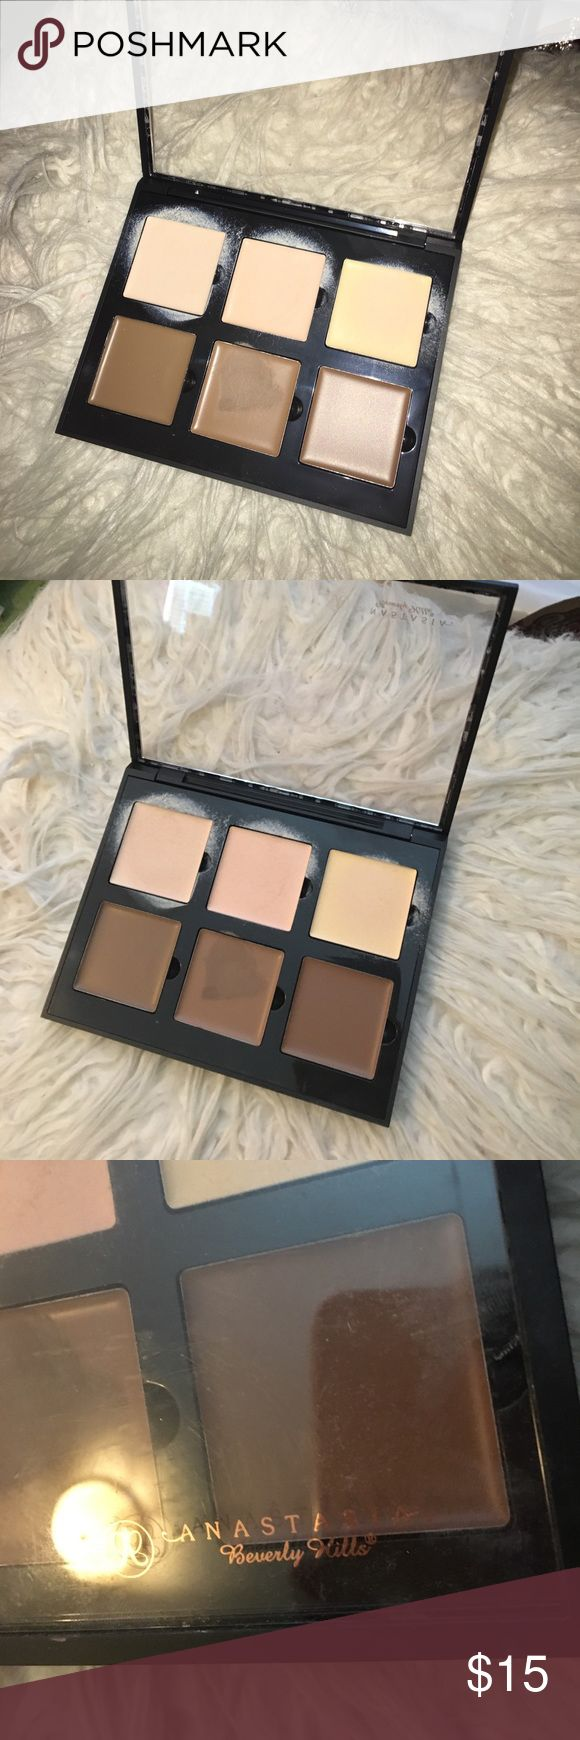 ABH Cream Contour Kit in Light Only been used once! Project was taken out with a CLEAN beauty blender Anastasia Beverly Hills Makeup Bronzer